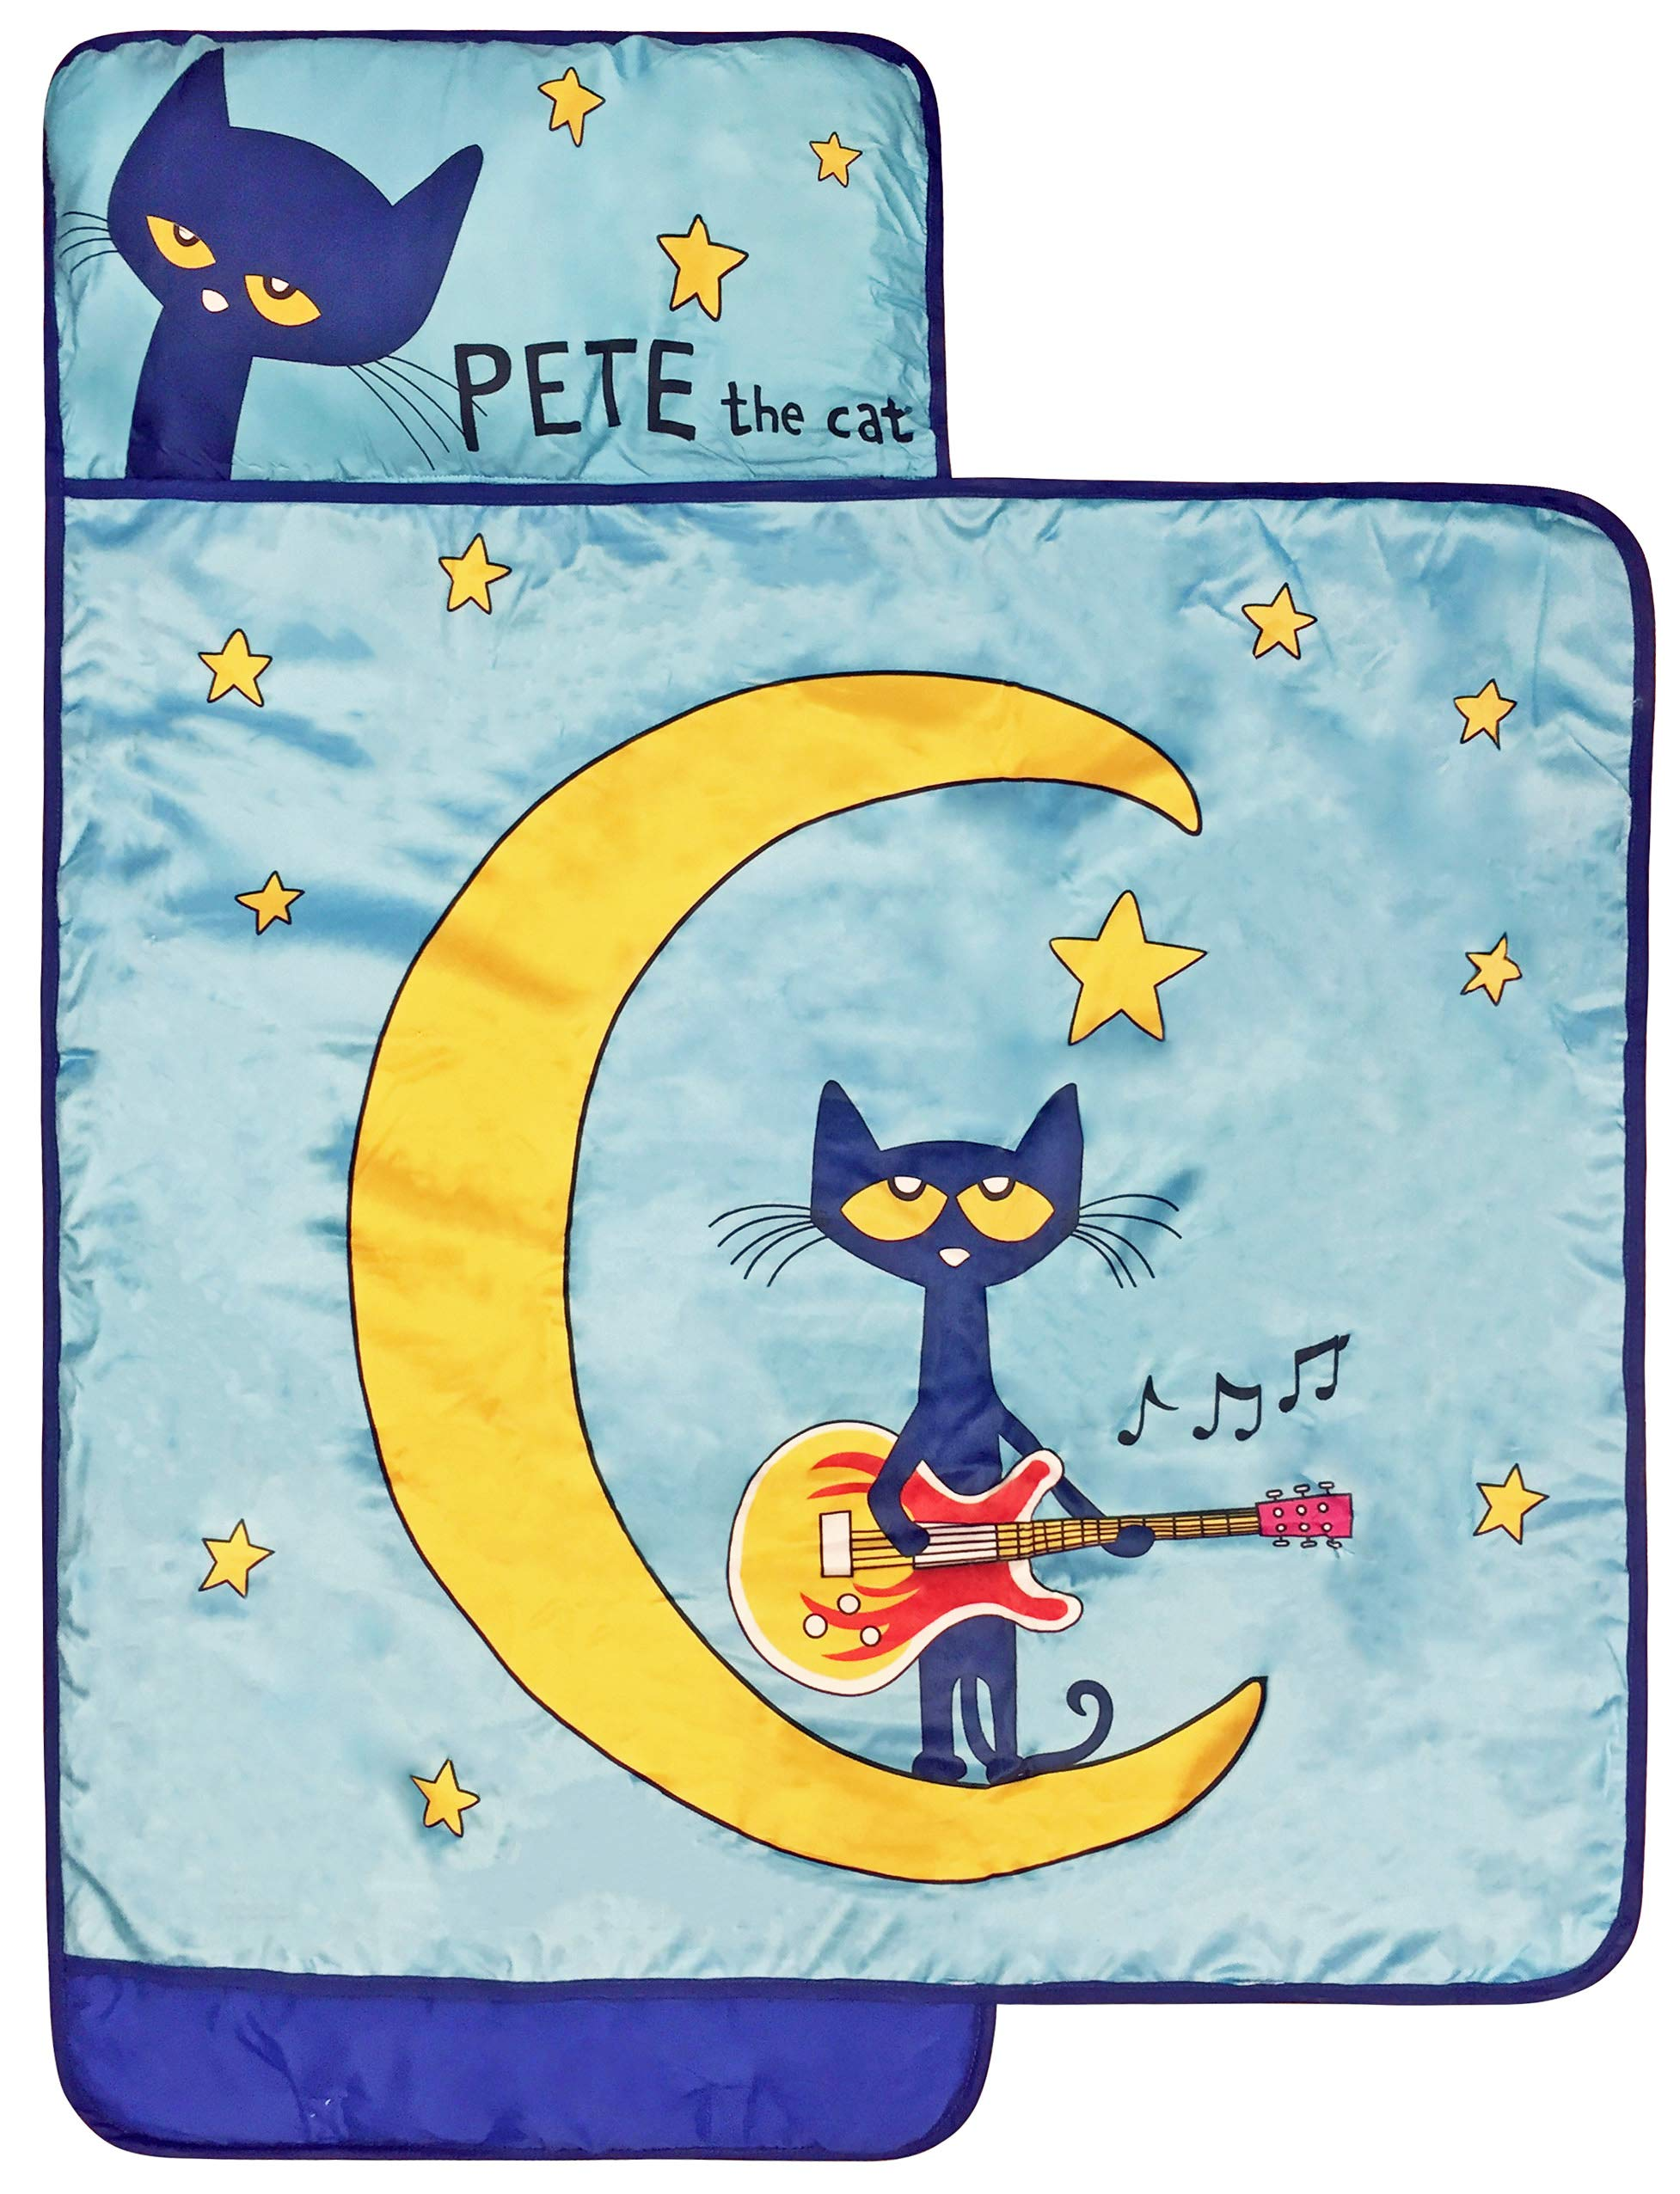 Pete The Cat Night Music Nap Mat - Built-in Pillow and Blanket - Super Soft Microfiber Kids'/Toddler/Children's Bedding, Ages 3-7 (Official Pete the Cat Product)